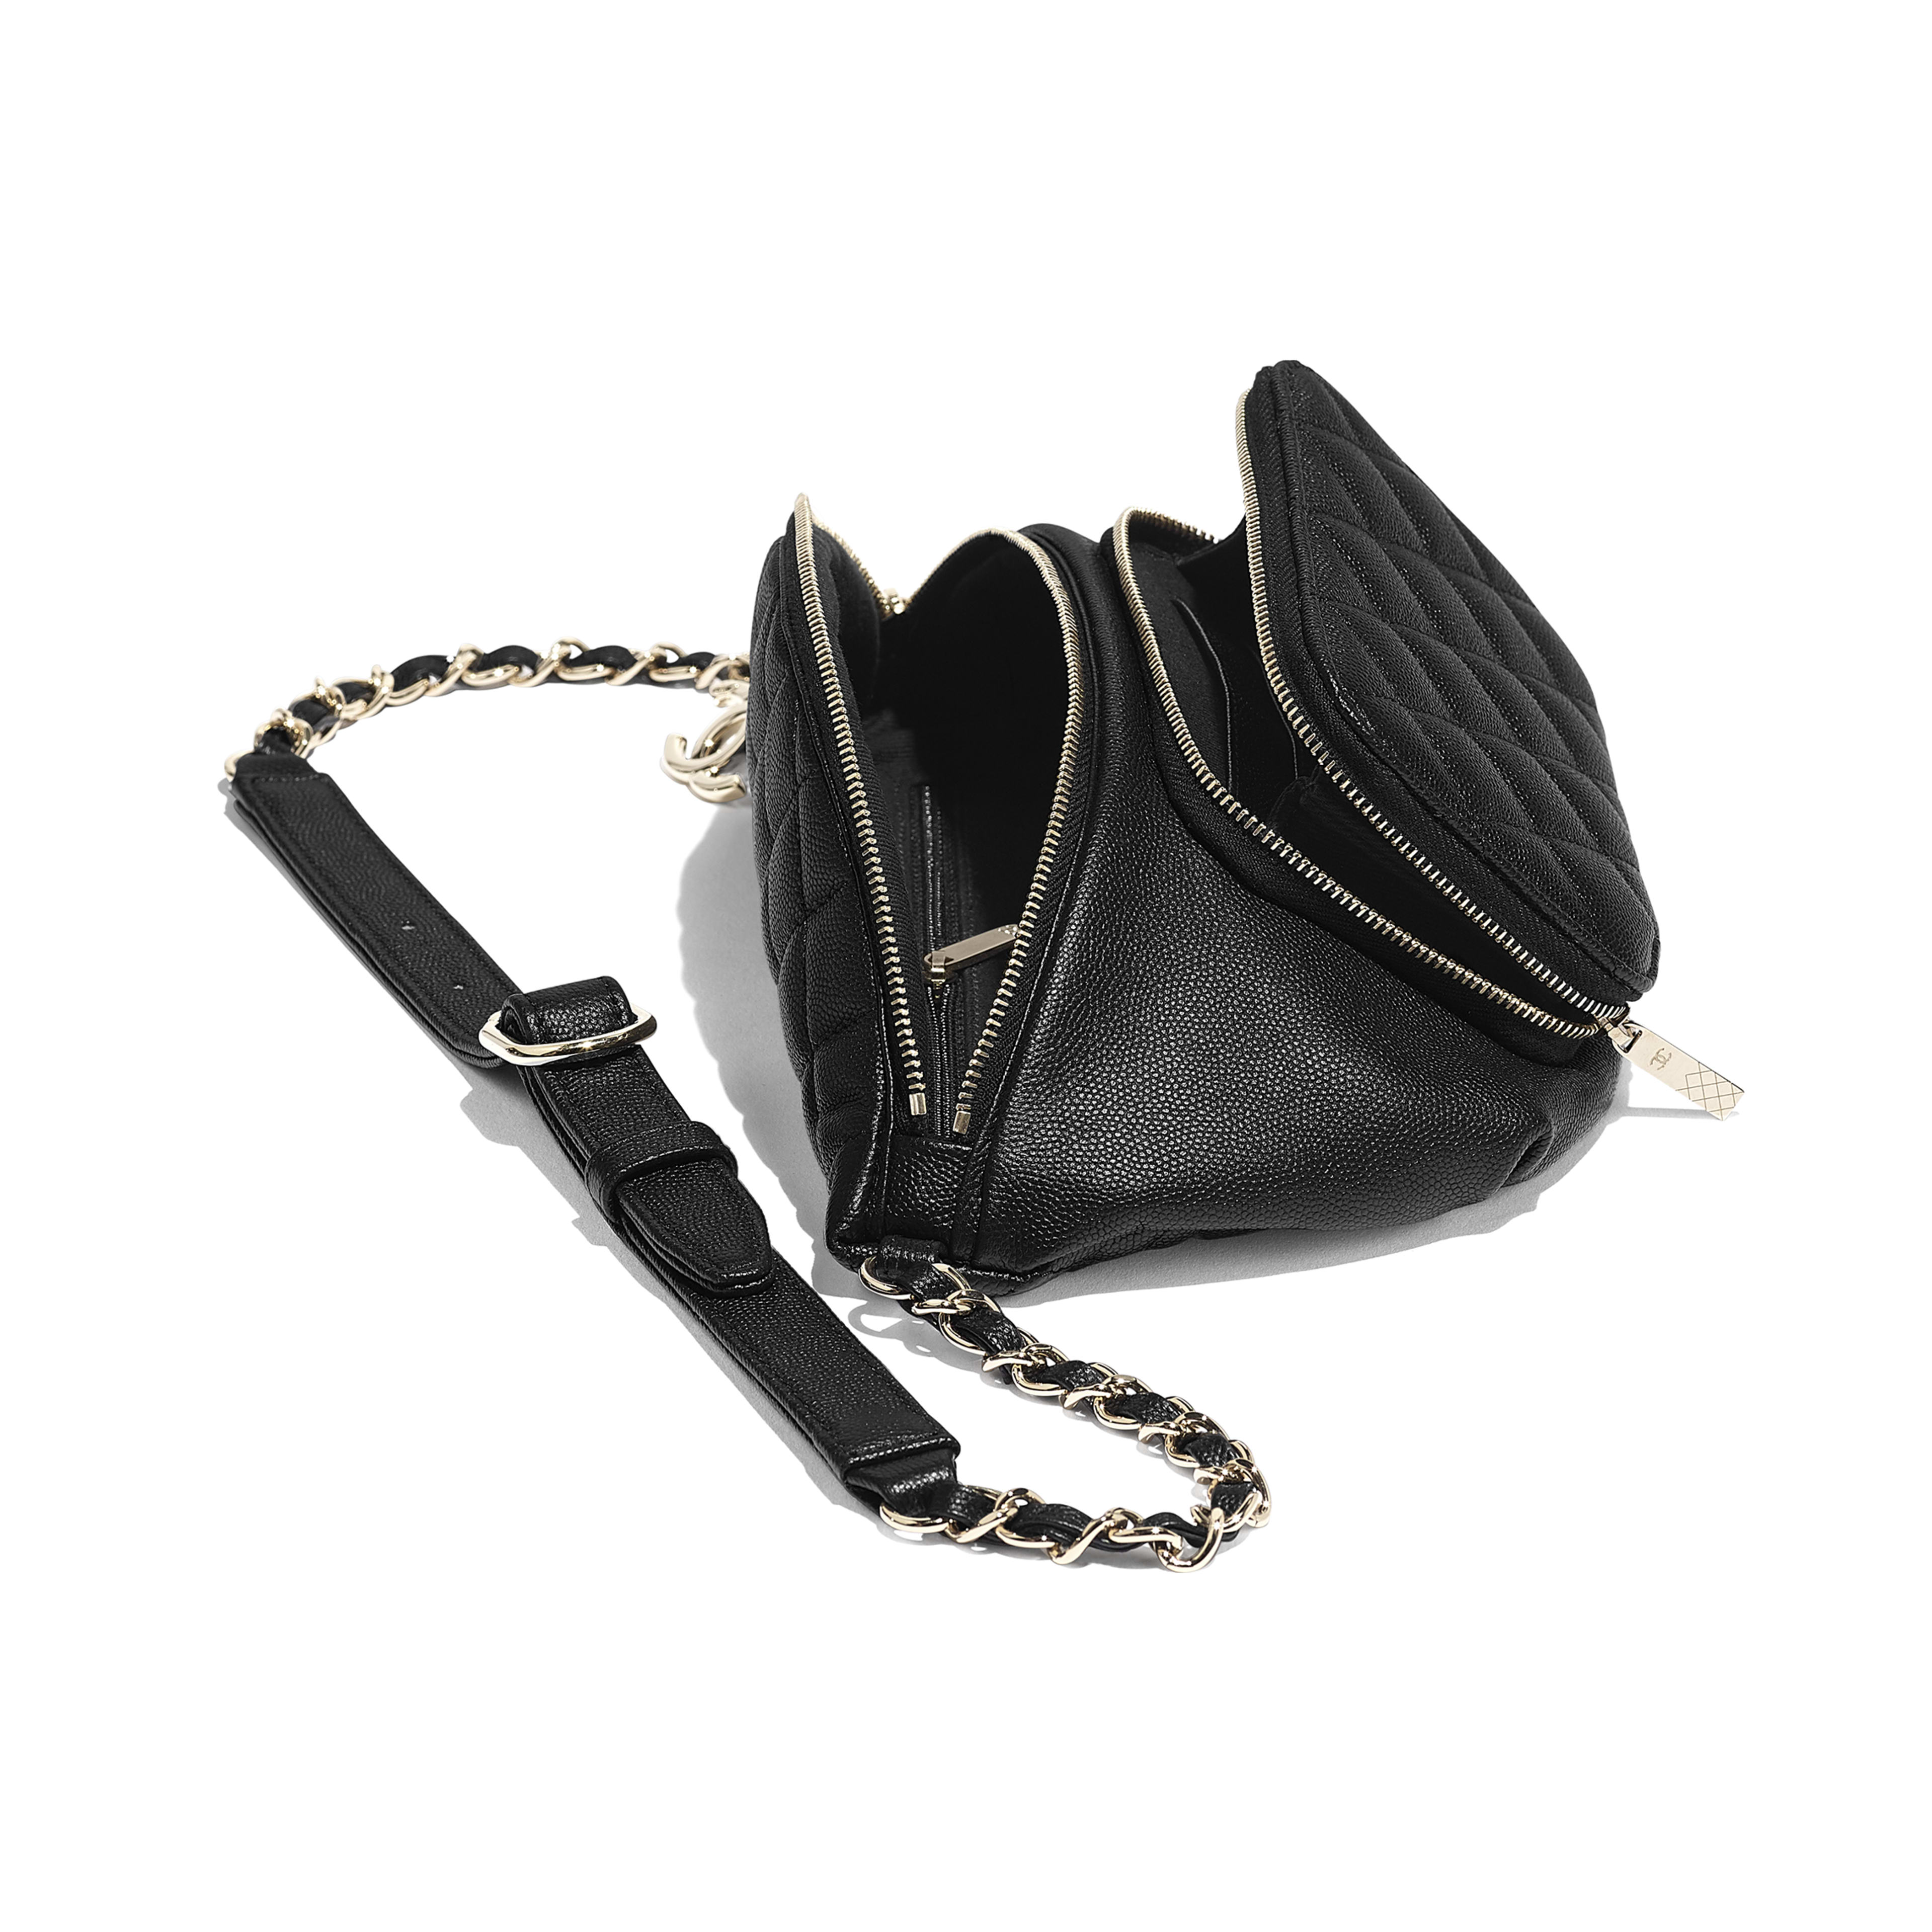 Waist Bag - Black - Grained Calfskin & Gold-Tone Metal - Other view - see full sized version